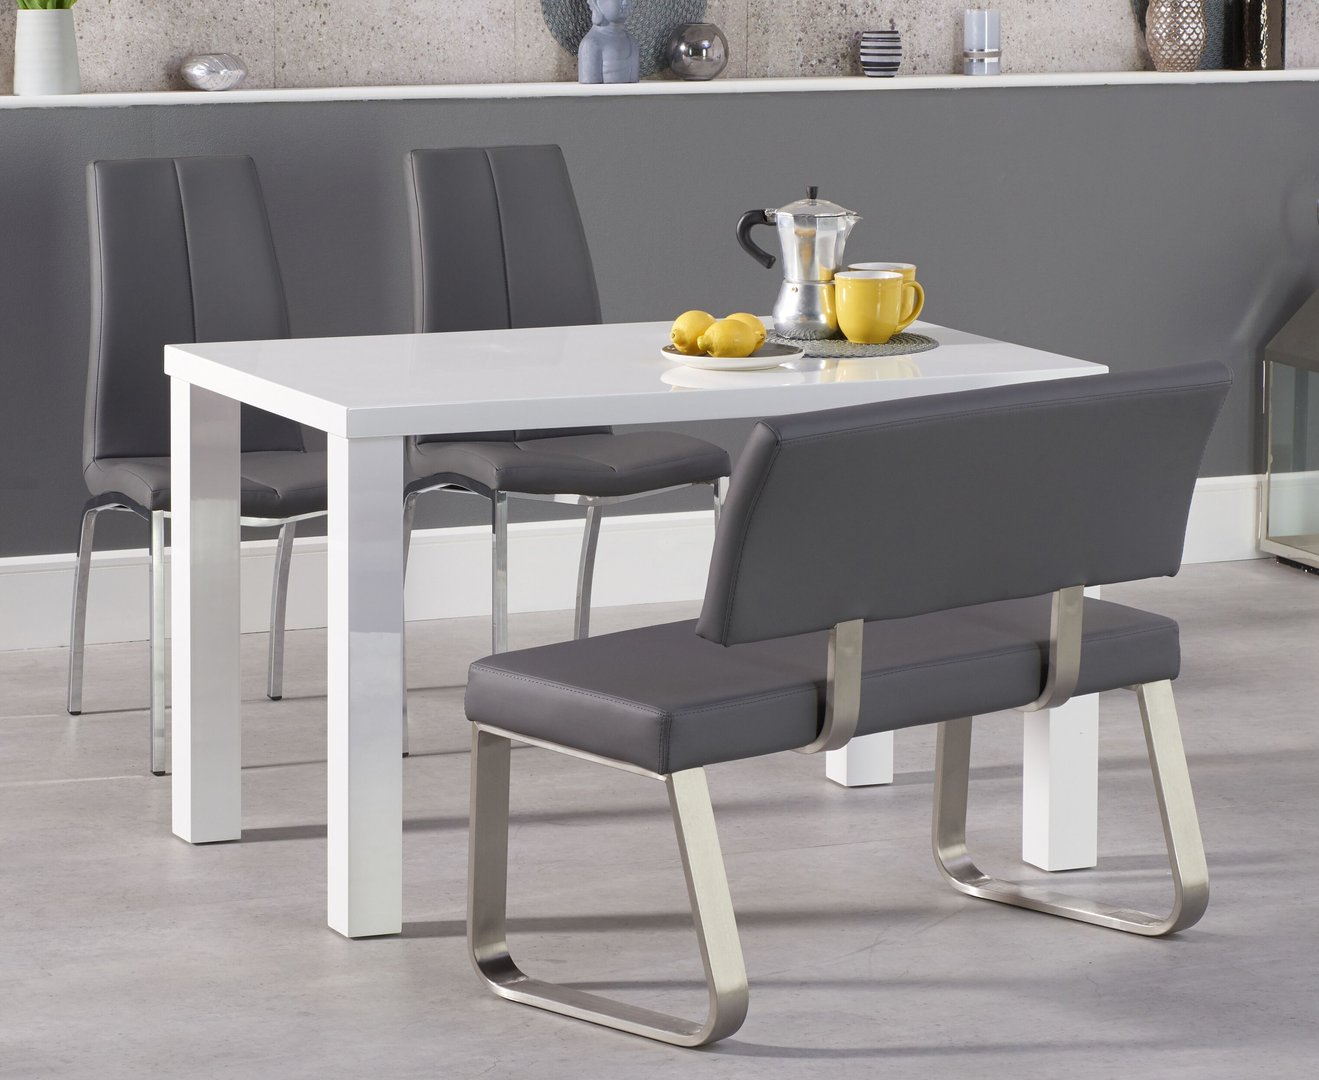 Picture of: White High Gloss Dining Table With Bench And Chairs Homegenies